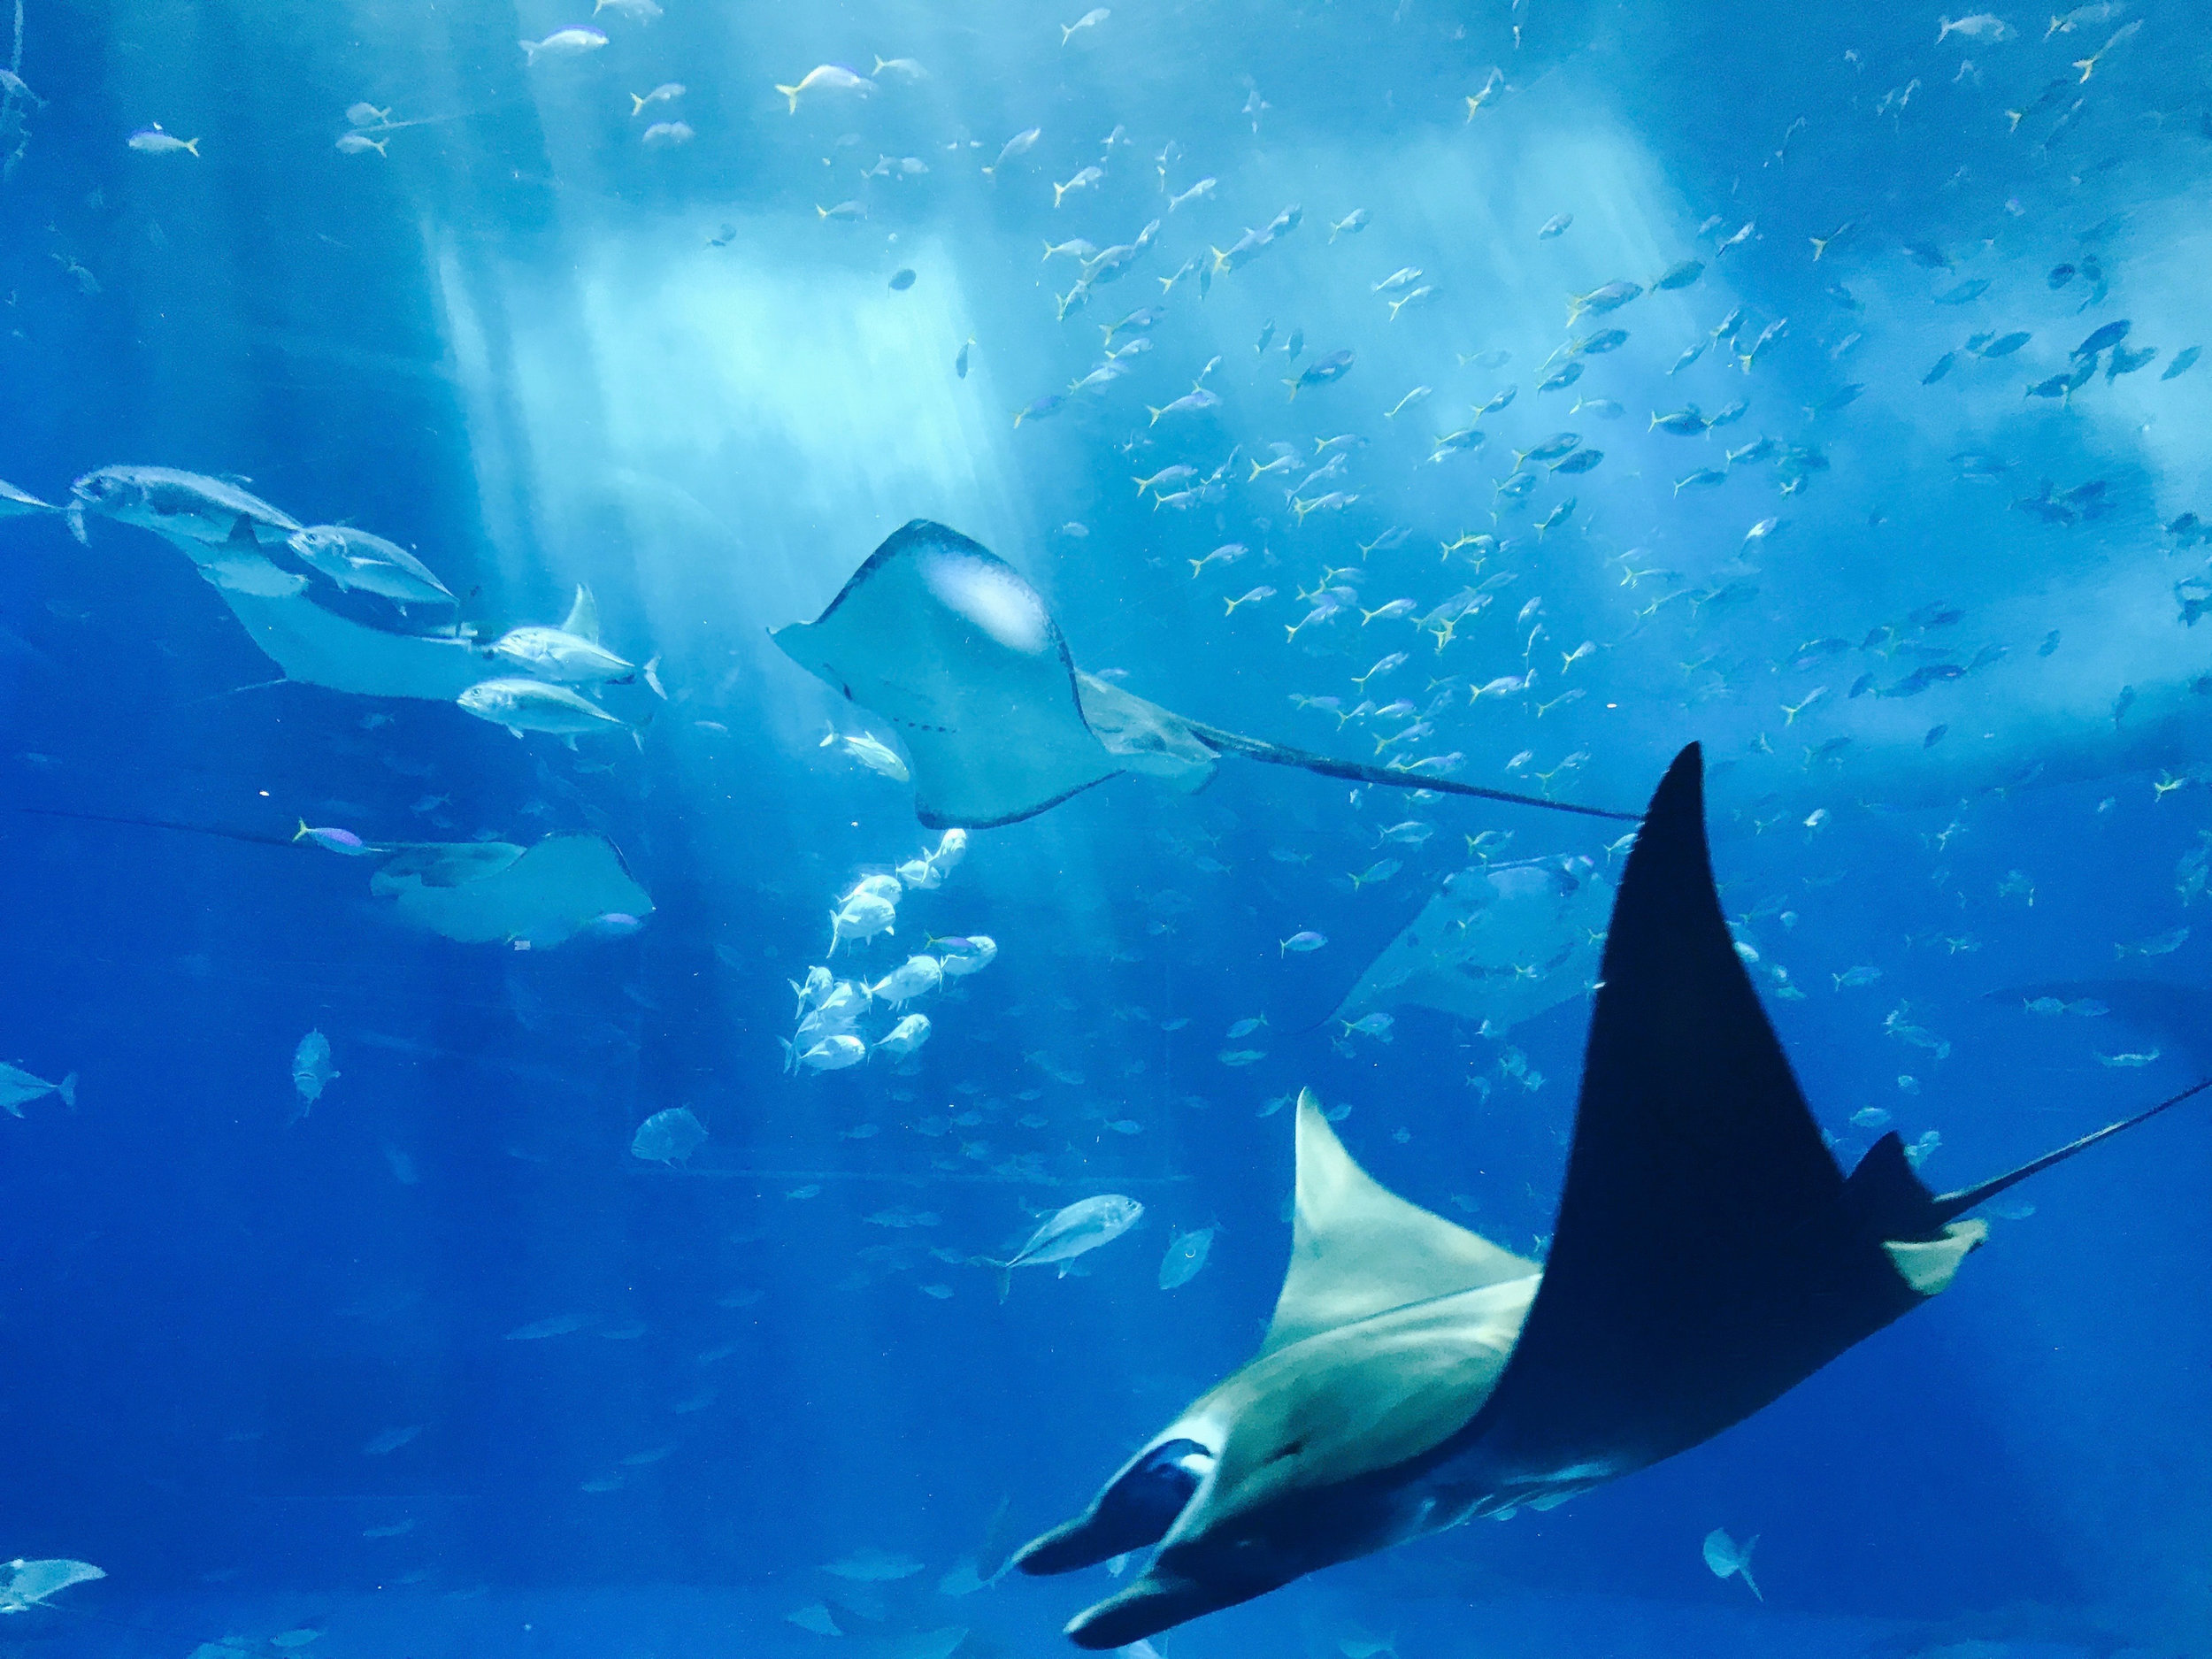 - NIGHTLY MANTA RAY TOURSSwim near a manta ray natural habitat on this night snorkeling tour from Kona.